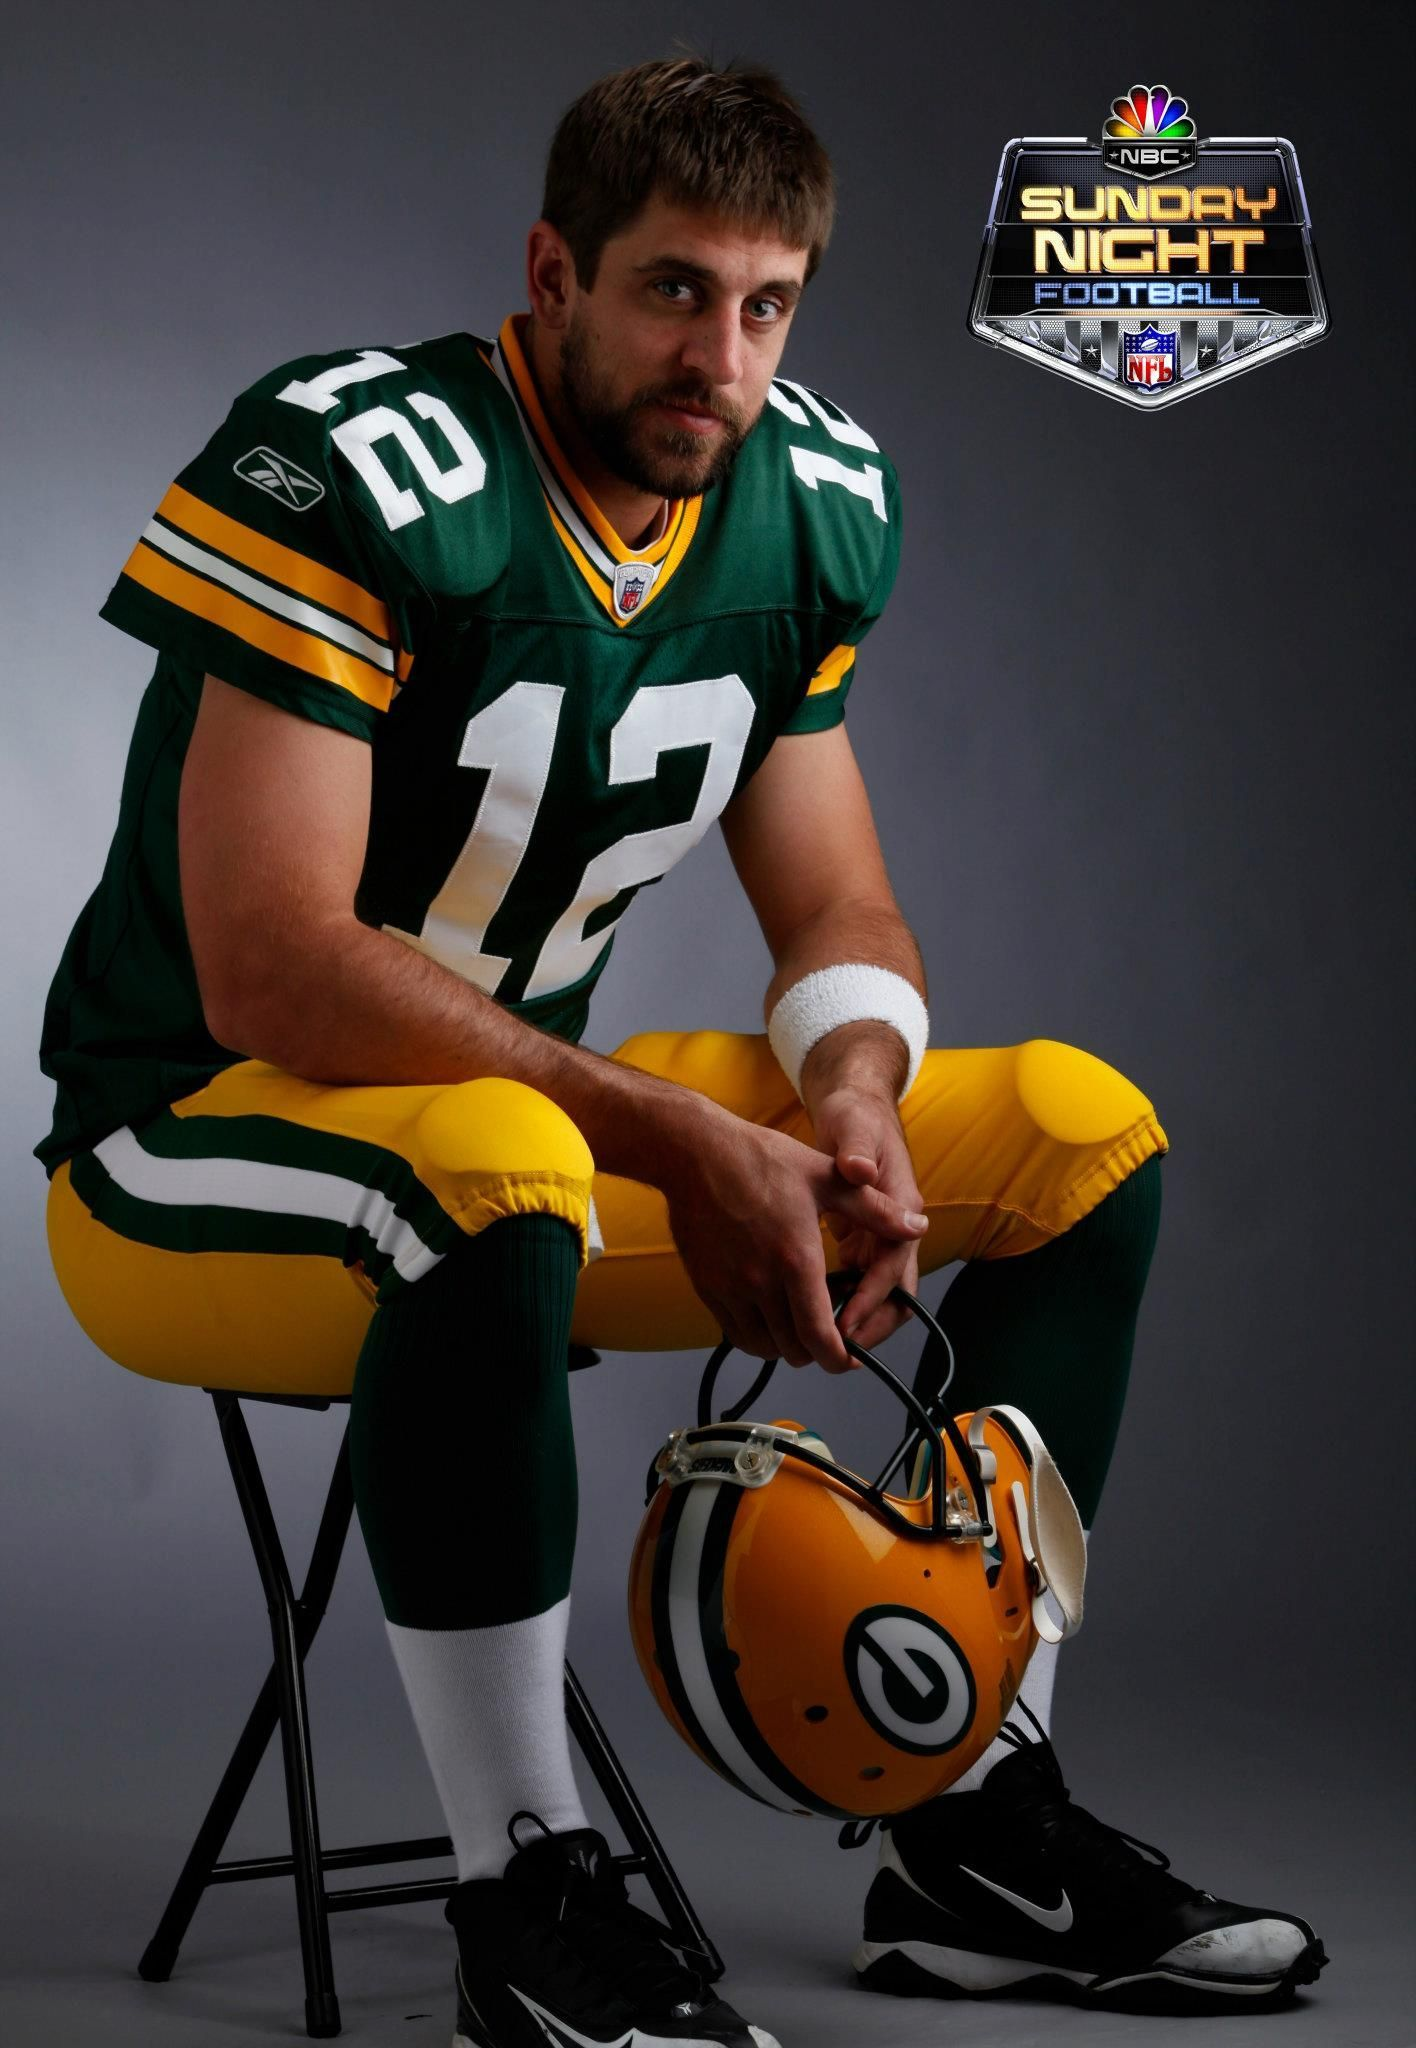 Aaron Rodgers Green Bay Packers Nbc Sports Edward Rieker Tags Sunday Night Football On Nbc Nflonn Green Bay Packers Team Green Packers Rodgers Green Bay